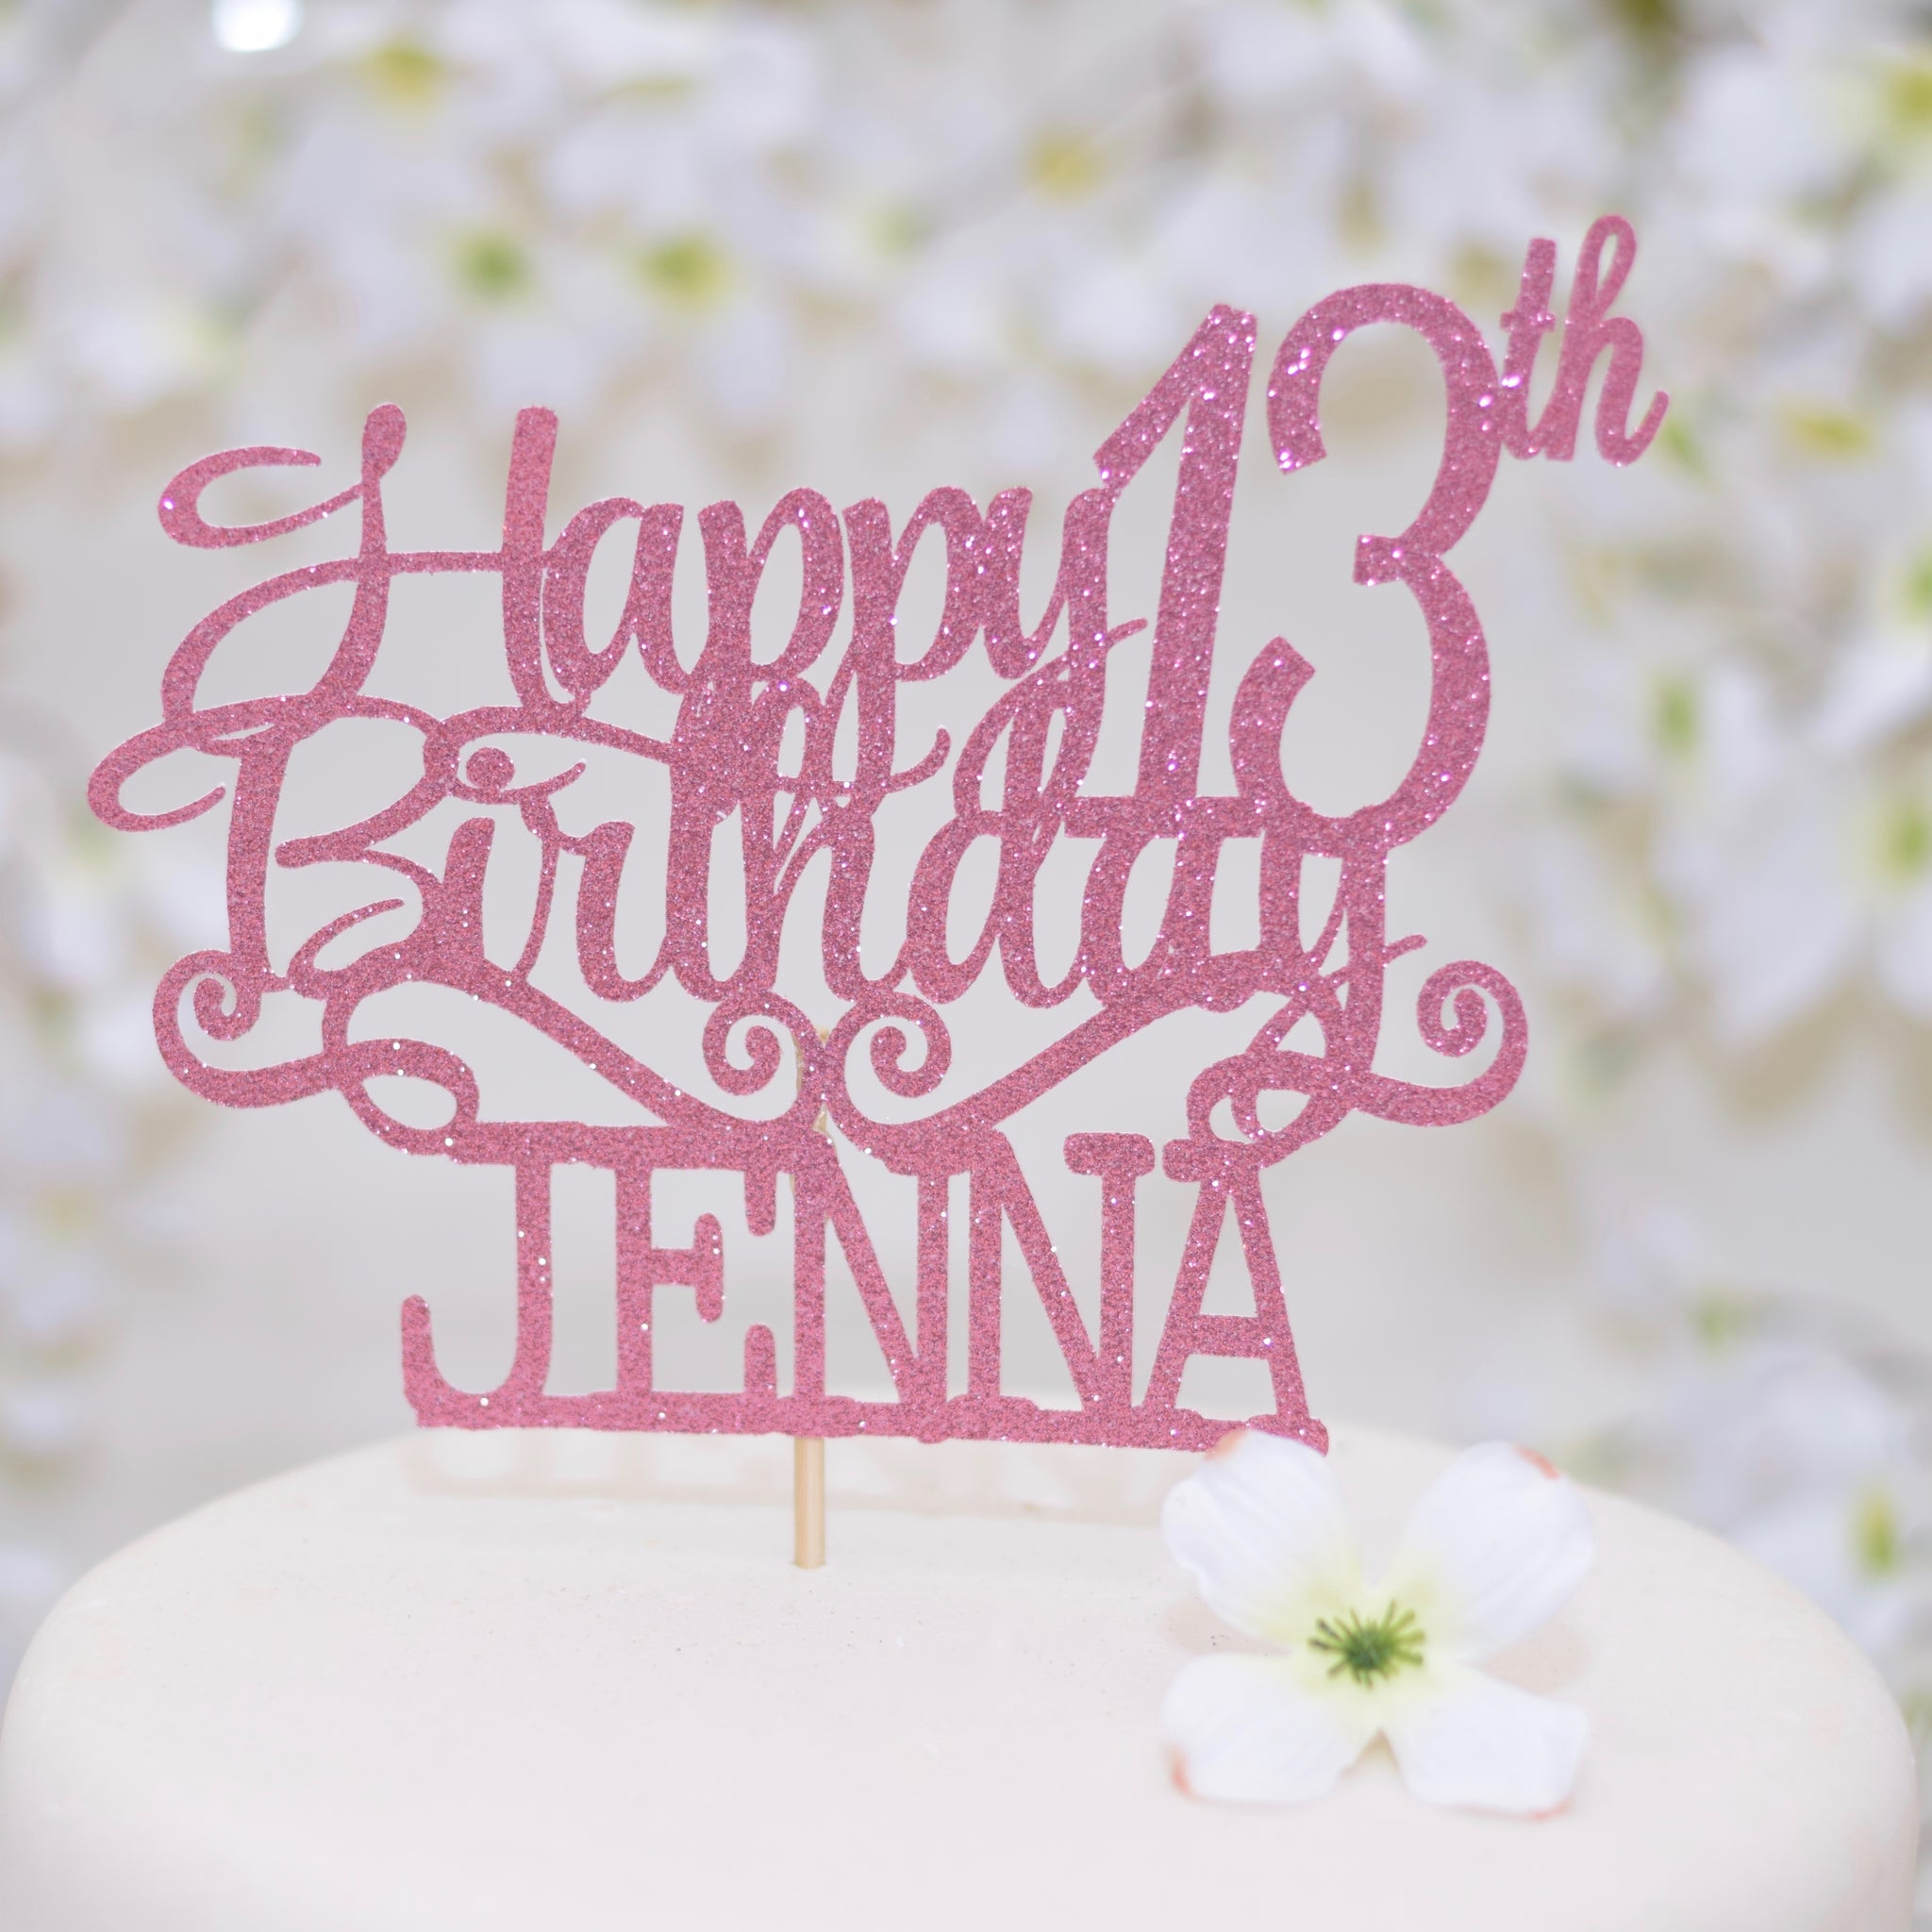 Happy 13th Birthday Jenna Pink Cake Topper On A White With Flowers